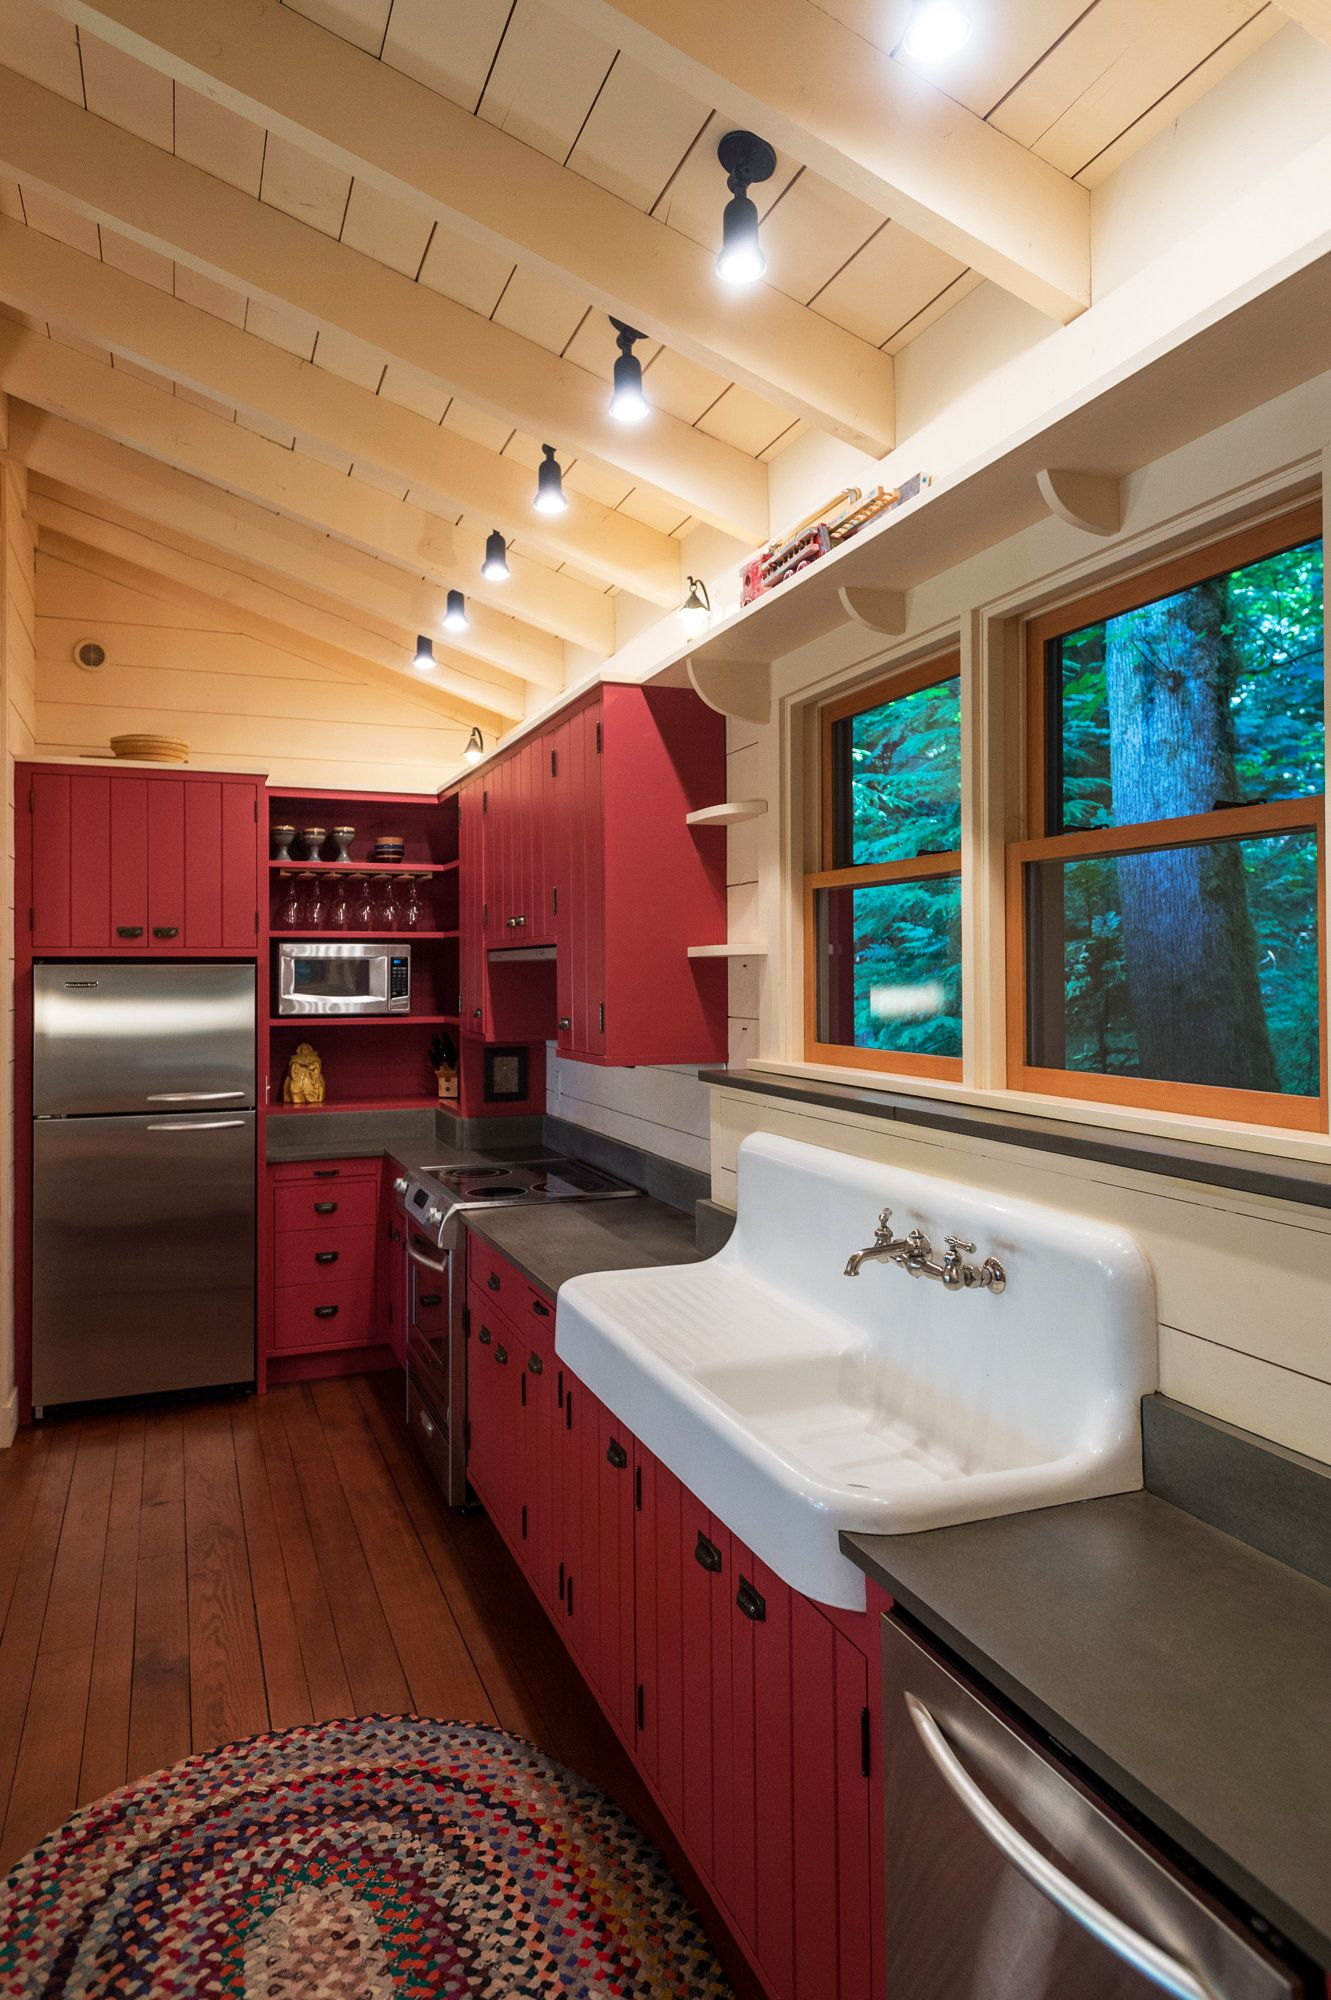 $800,000 Homes in Washington State, Albuquerque and ...